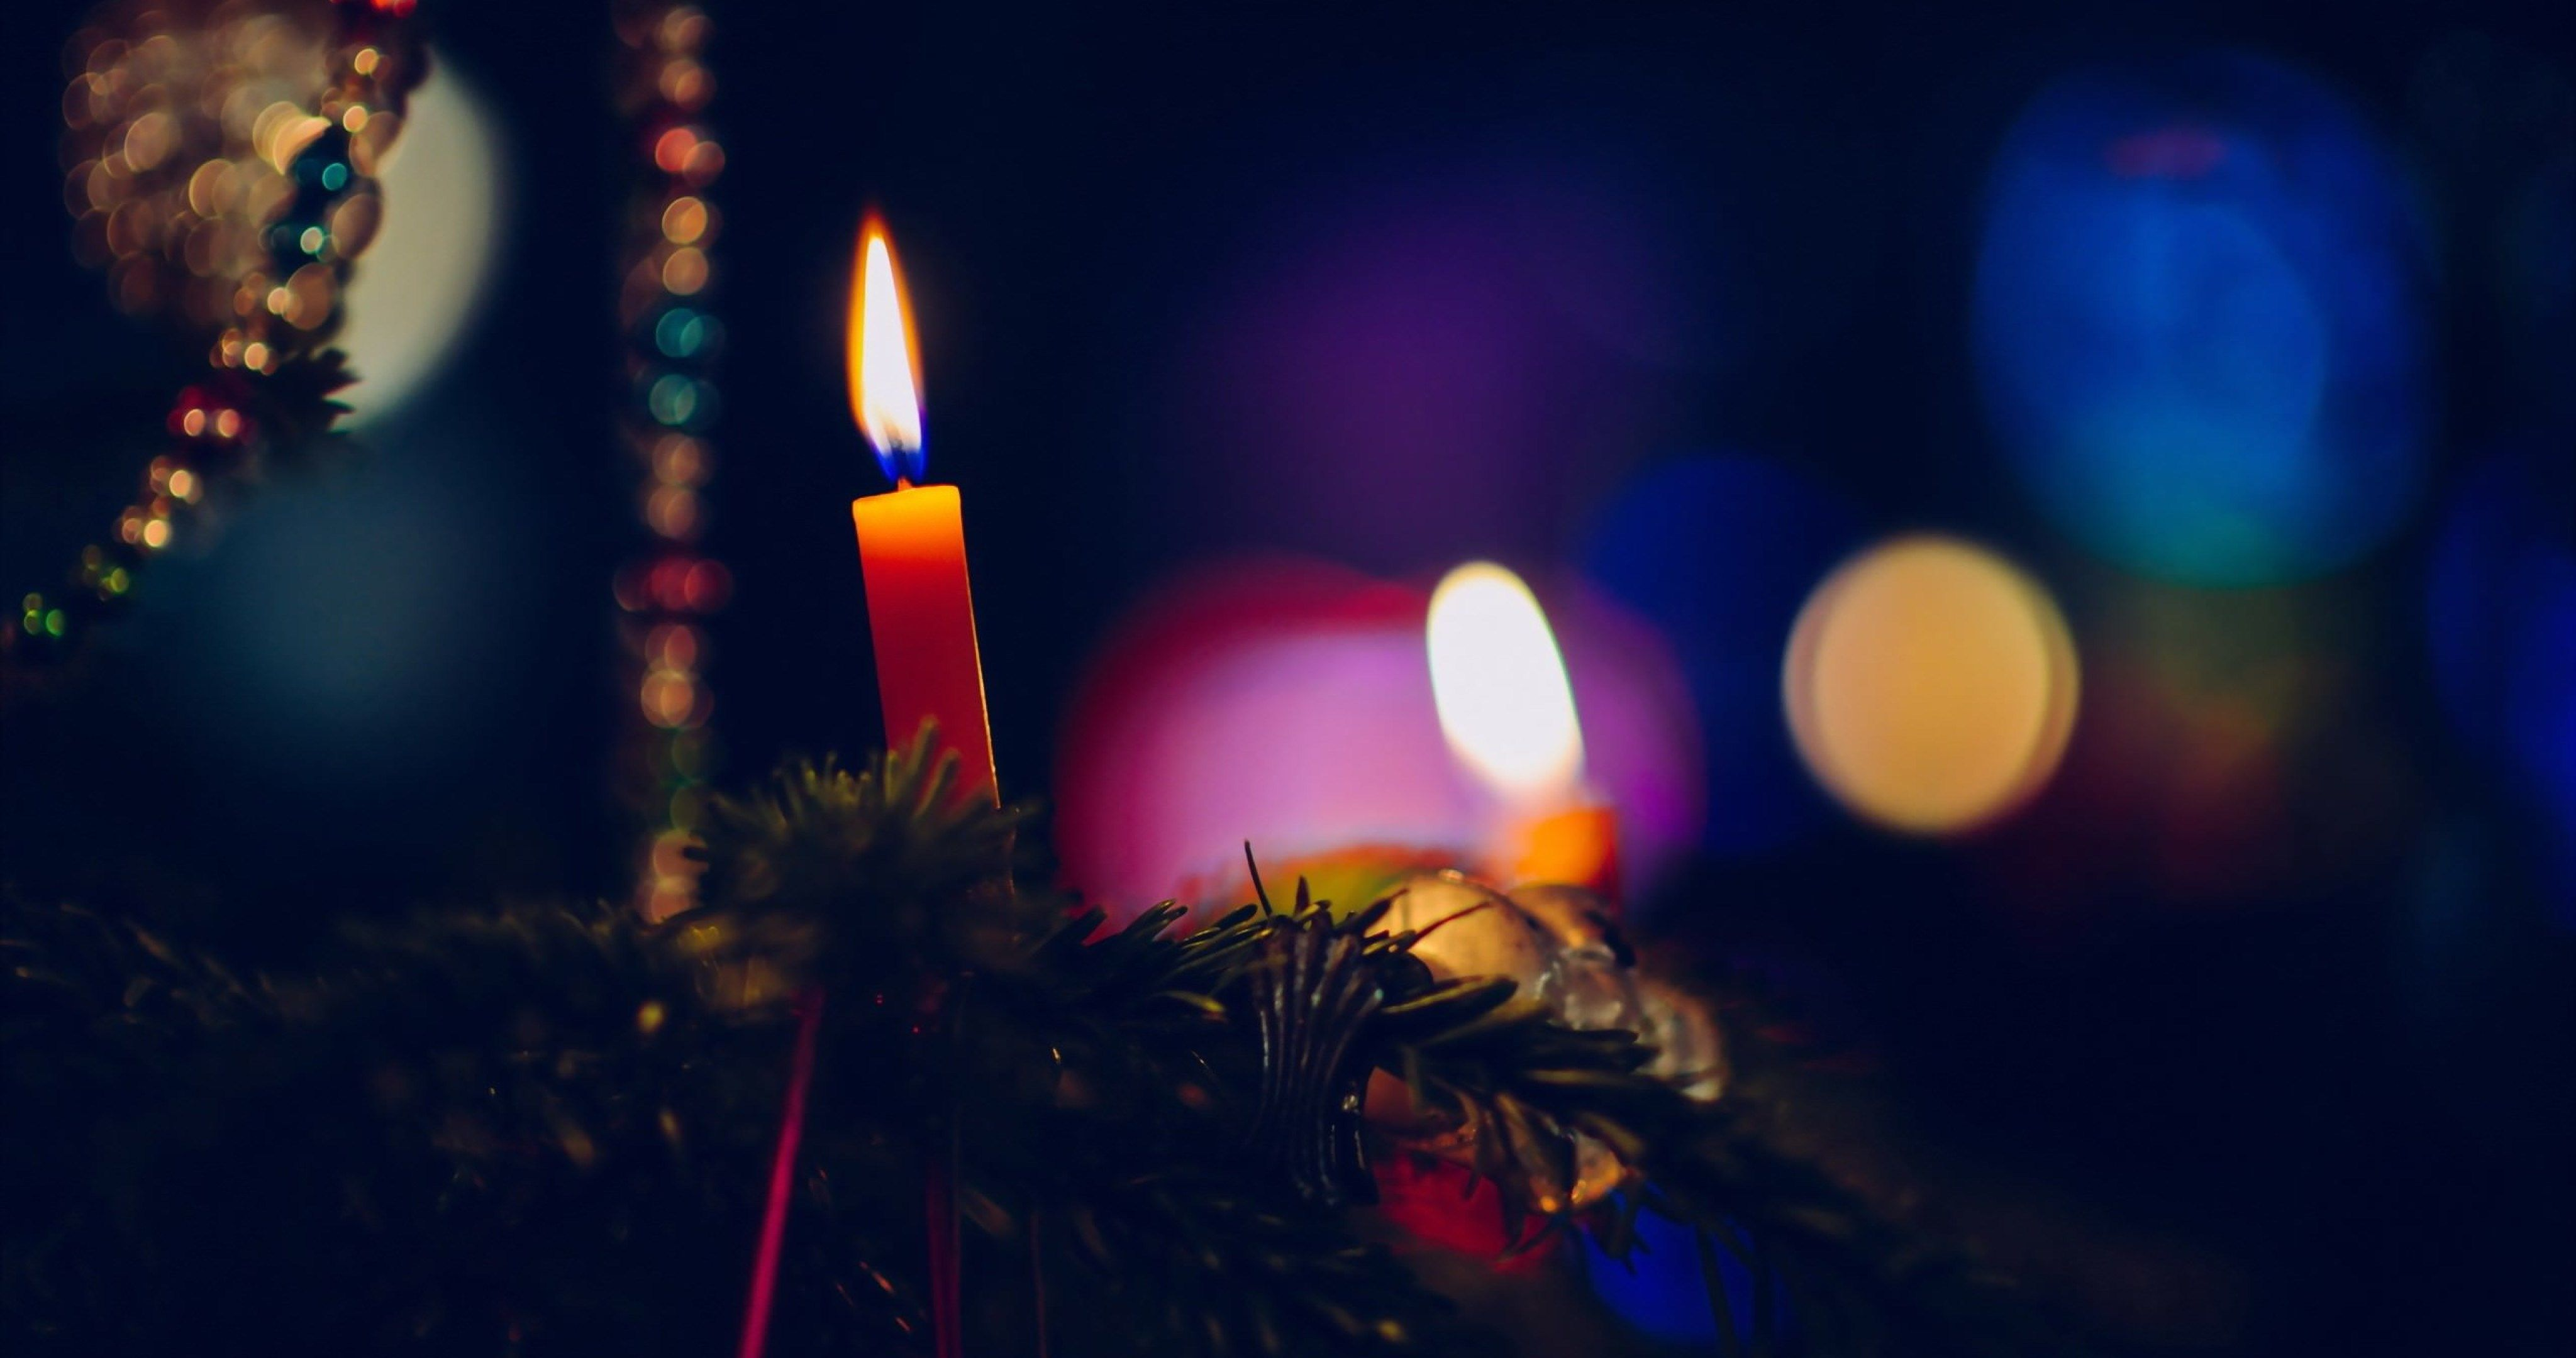 New Year Celebration Wallpaper 4k Ultra Hd Wallpaper Halloween Backgrounds Christmas Tree Candles Christmas Scenes